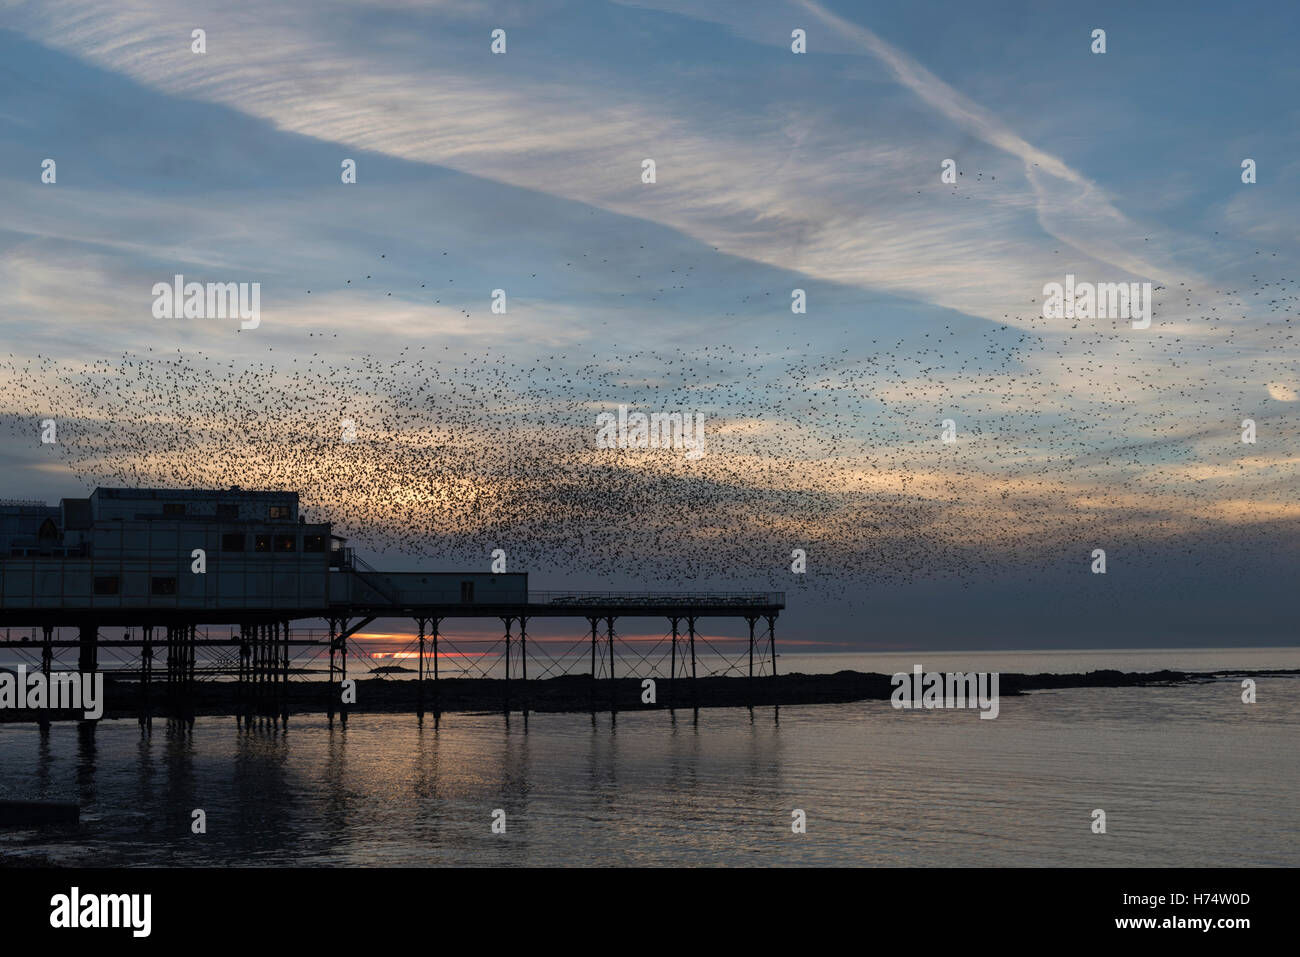 A murmuration of starlings flock over Aberystwyth's Victorian Pier dating back to 1865. Stock Photo